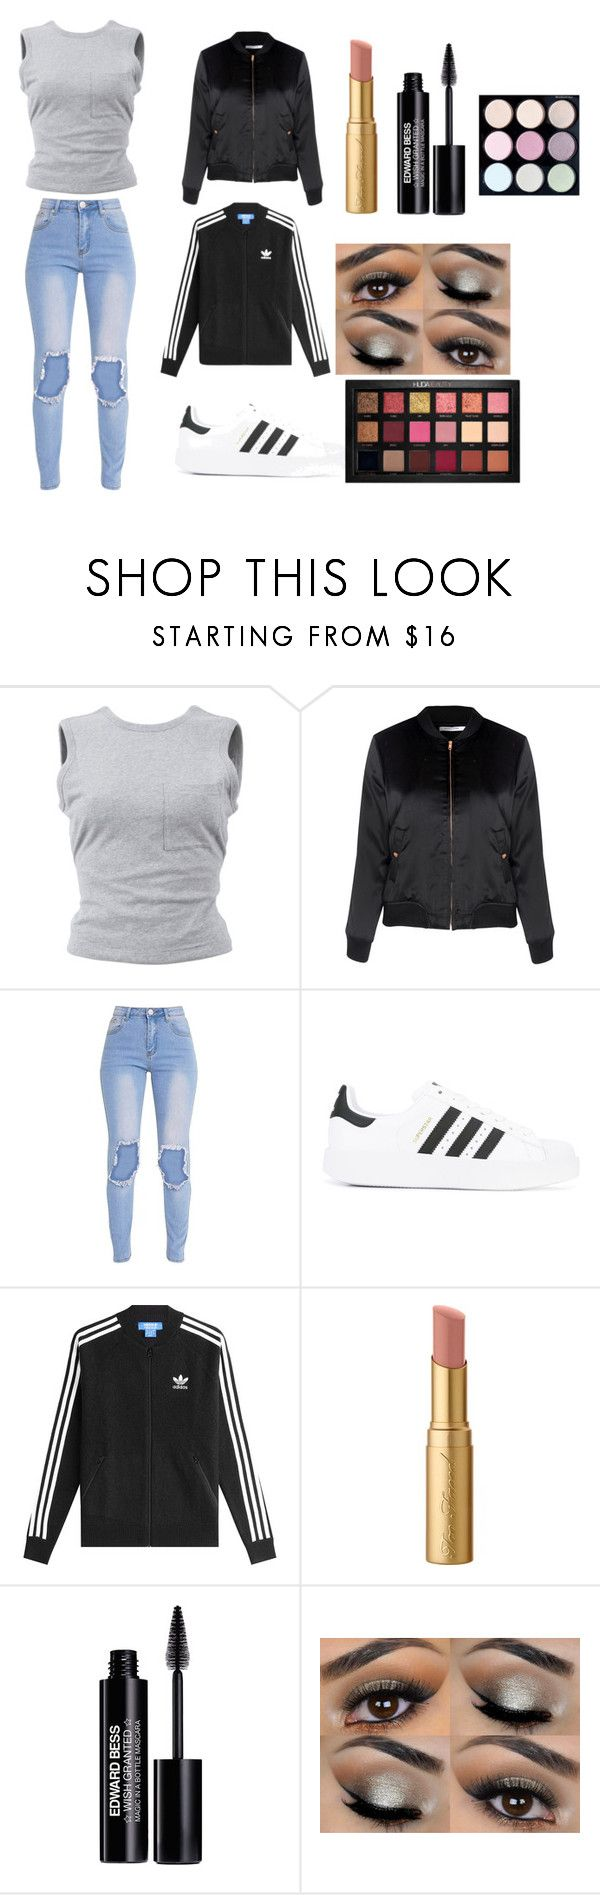 """Random"" by mc-crusher on Polyvore featuring T By Alexander Wang, Glamorous, adidas, adidas Originals, Too Faced Cosmetics, Edward Bess and Huda Beauty"